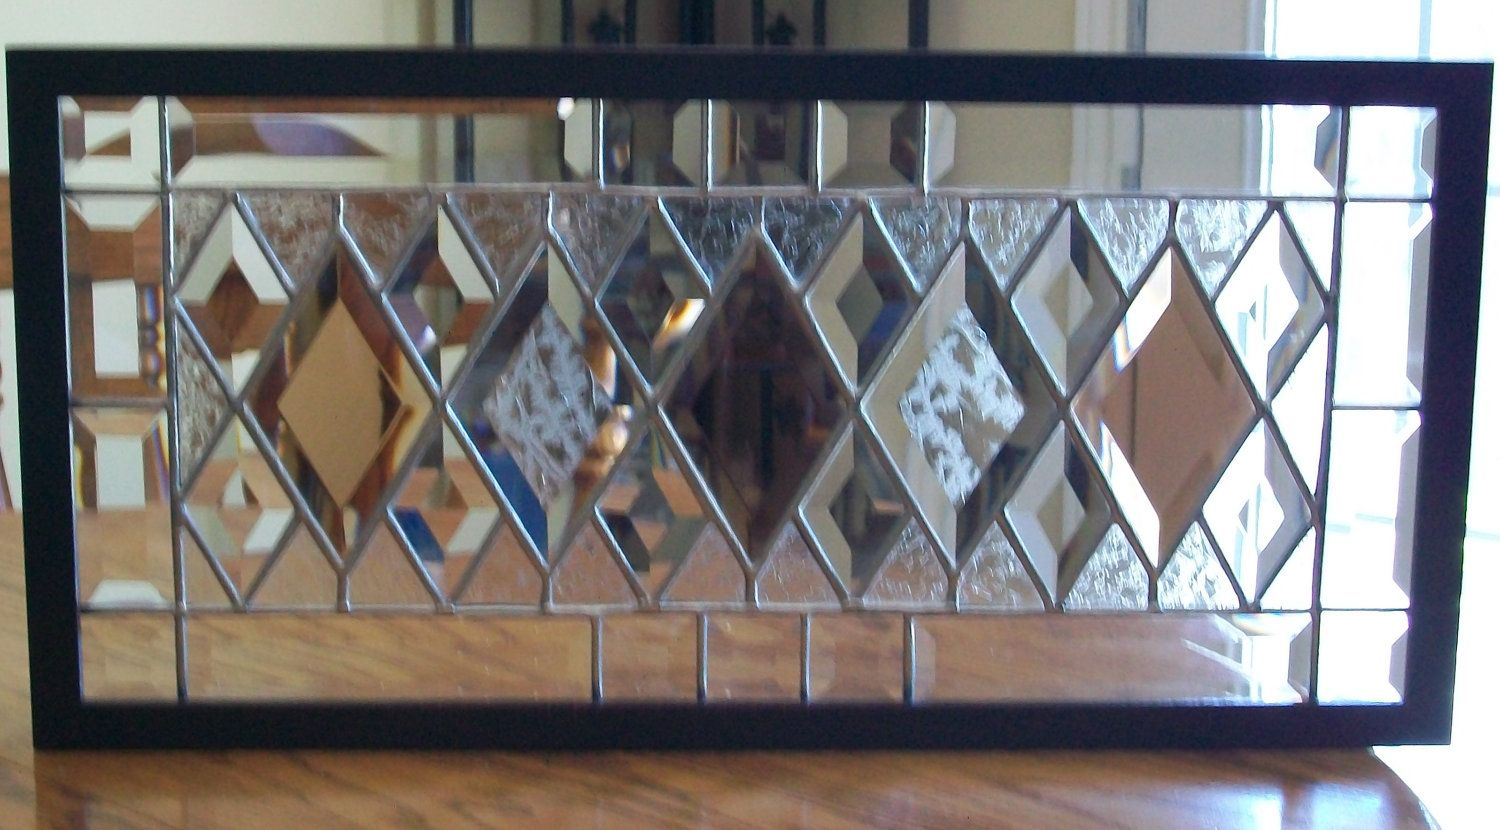 Beveled Stained Glass Panel - framed - trying to find a design to use as a transom window